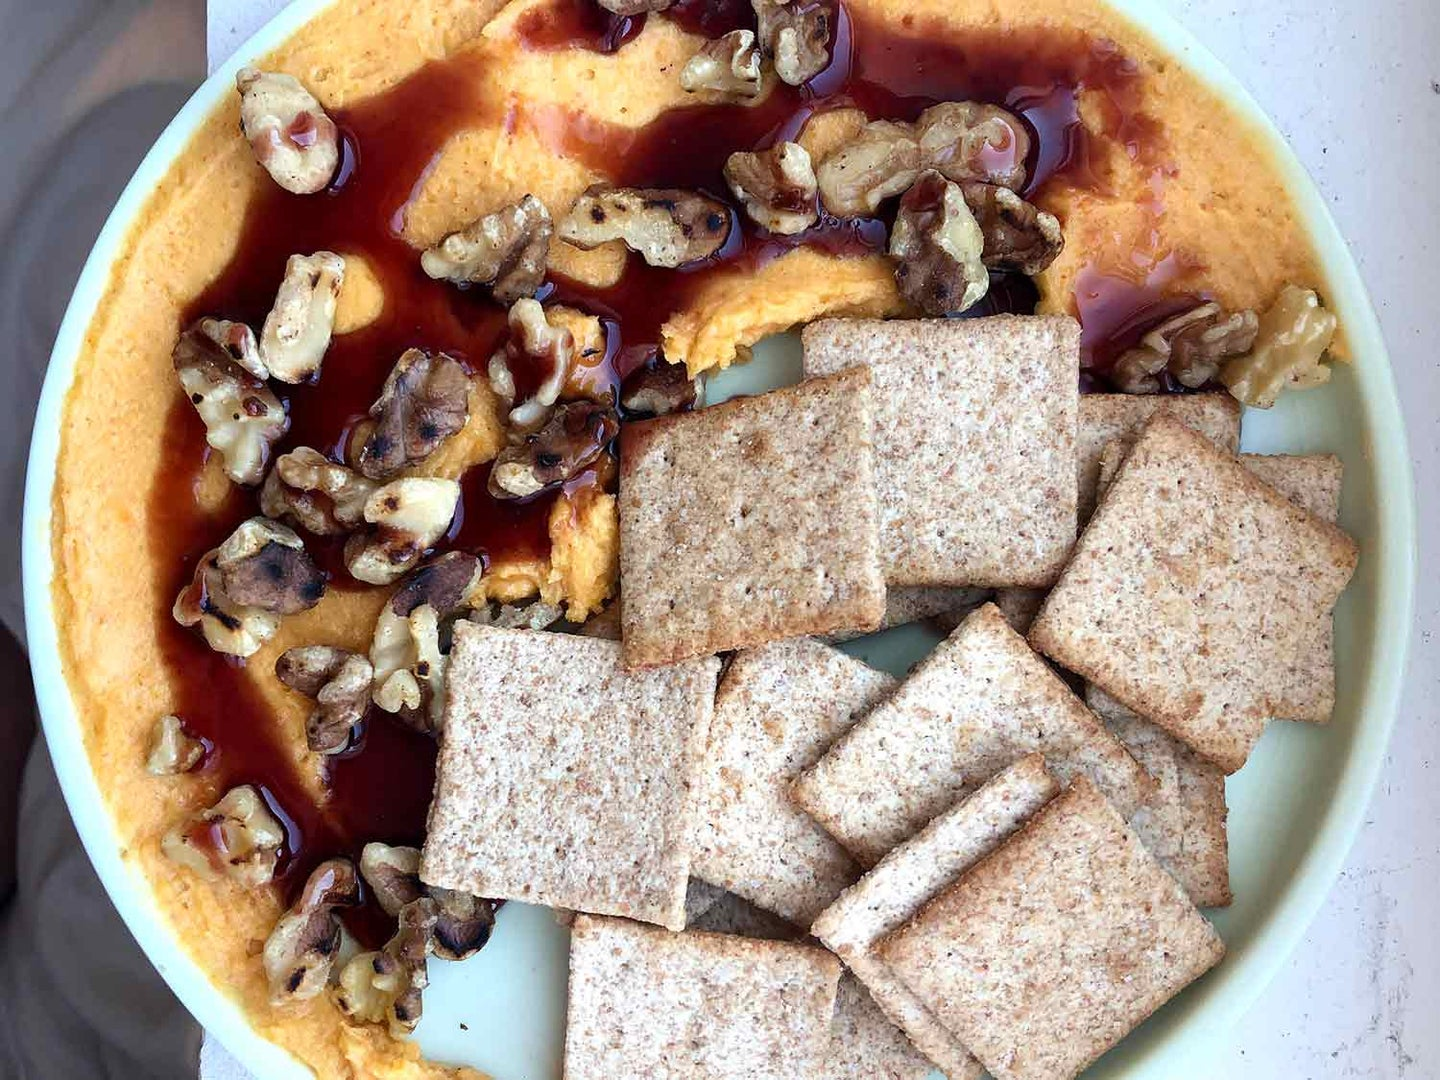 Amy Thielen's Old-Fashioned Pounded Cheese with Walnuts and Port Syrup